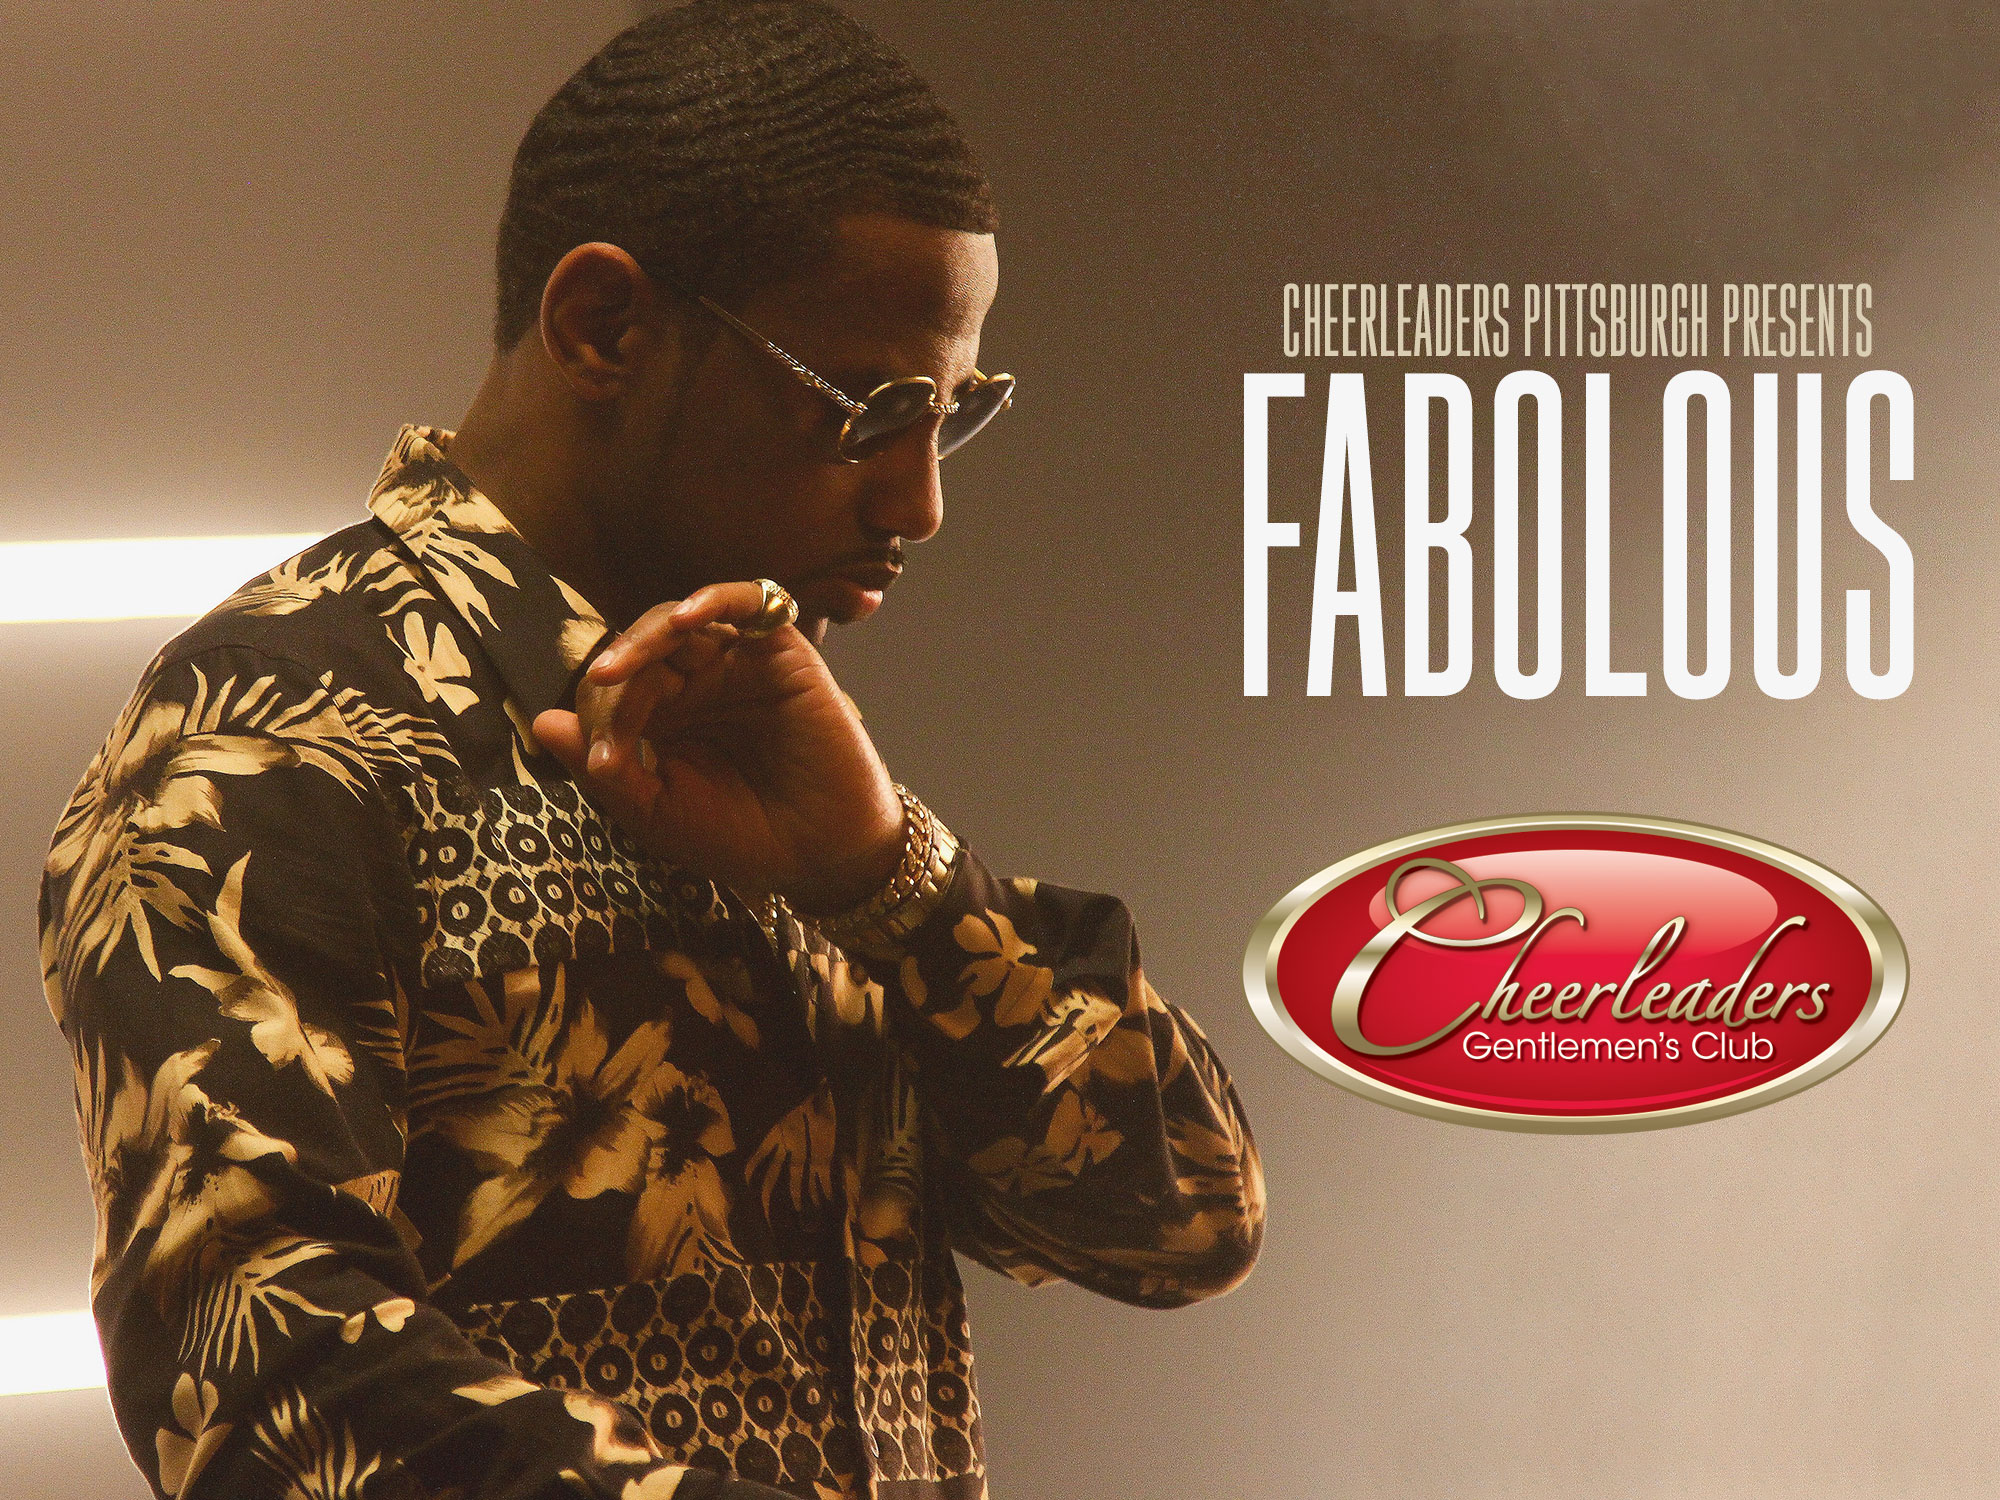 Fabolous - Cheerleaders Pittsburgh